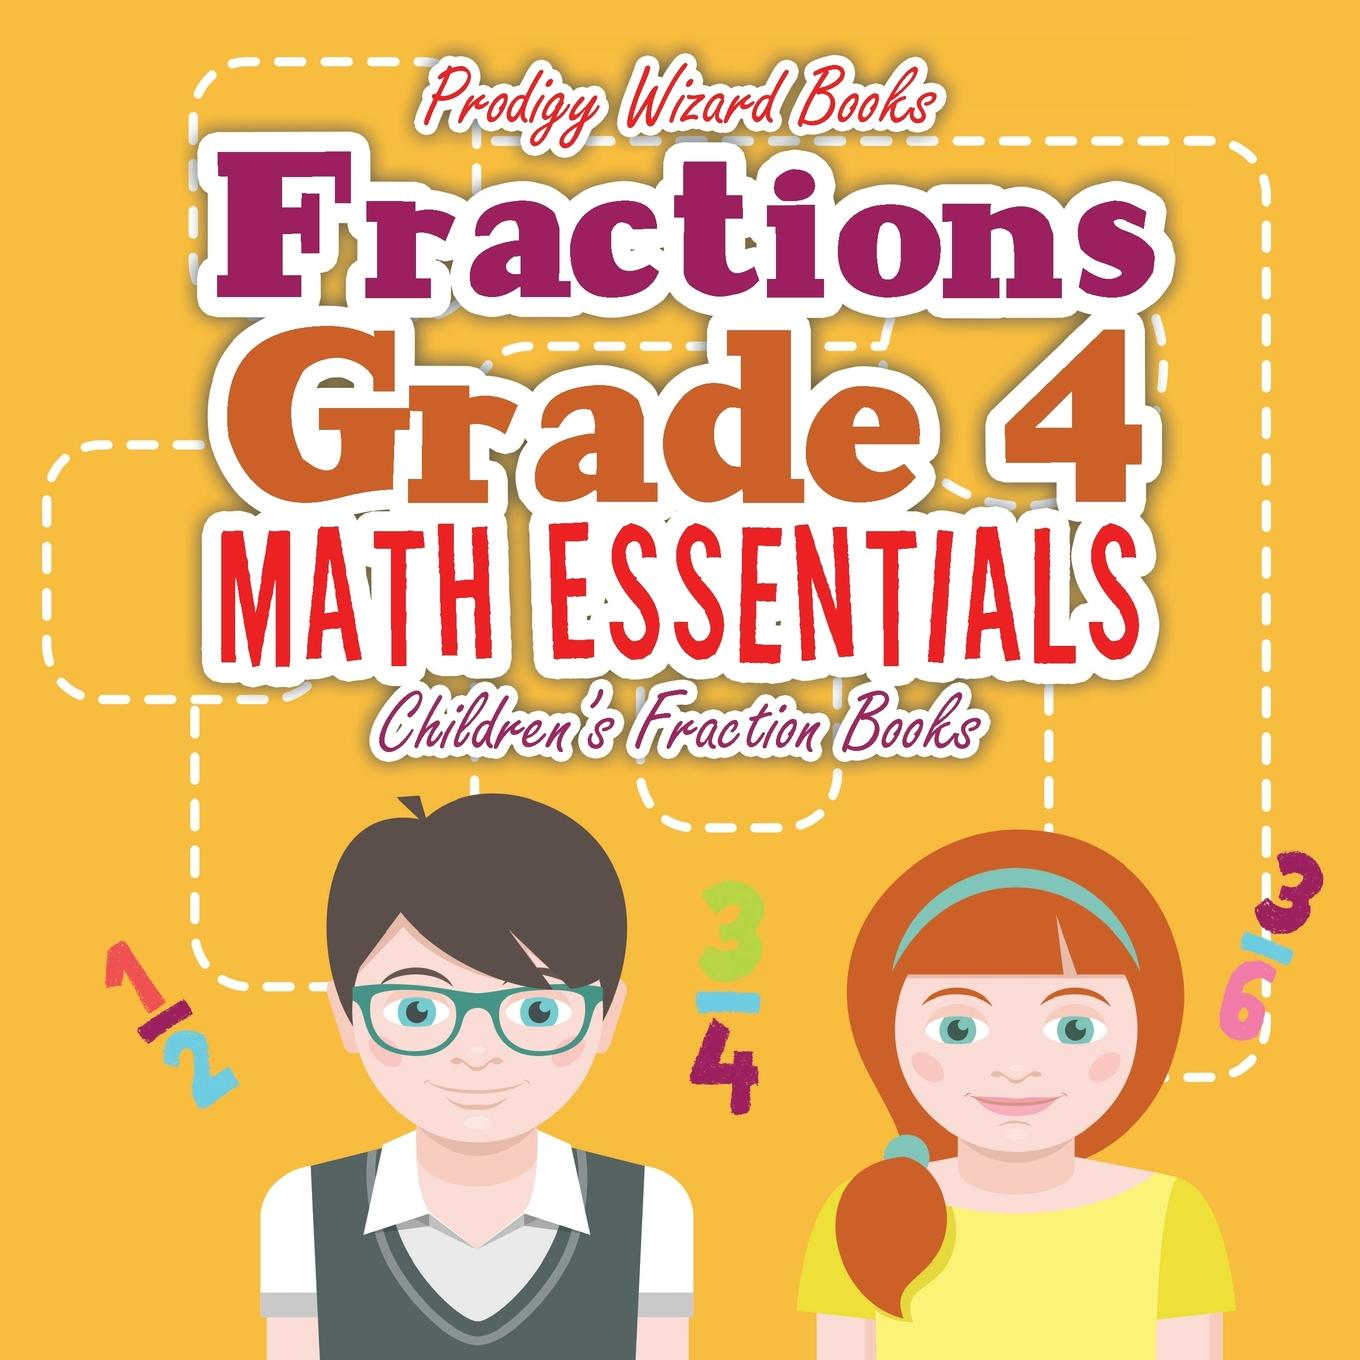 Fractions Grade 4 Math Essentials: Children's Fraction Books (Paperback)